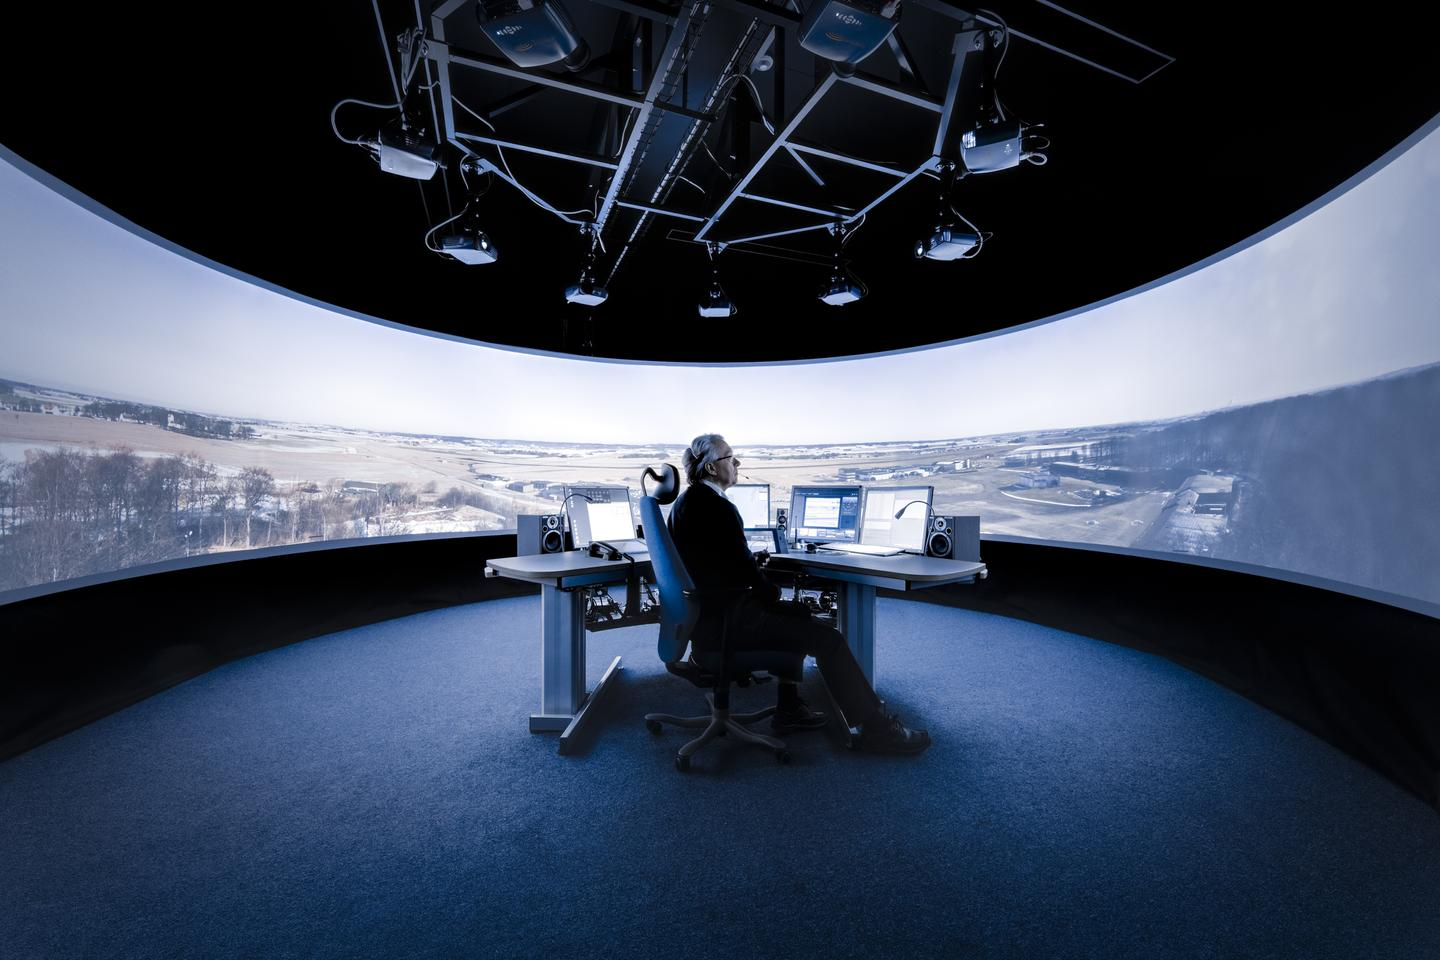 Saab's remote aircraft tower places human air controllers miles away from the airfield to consolidate operations (Photo: Saab)